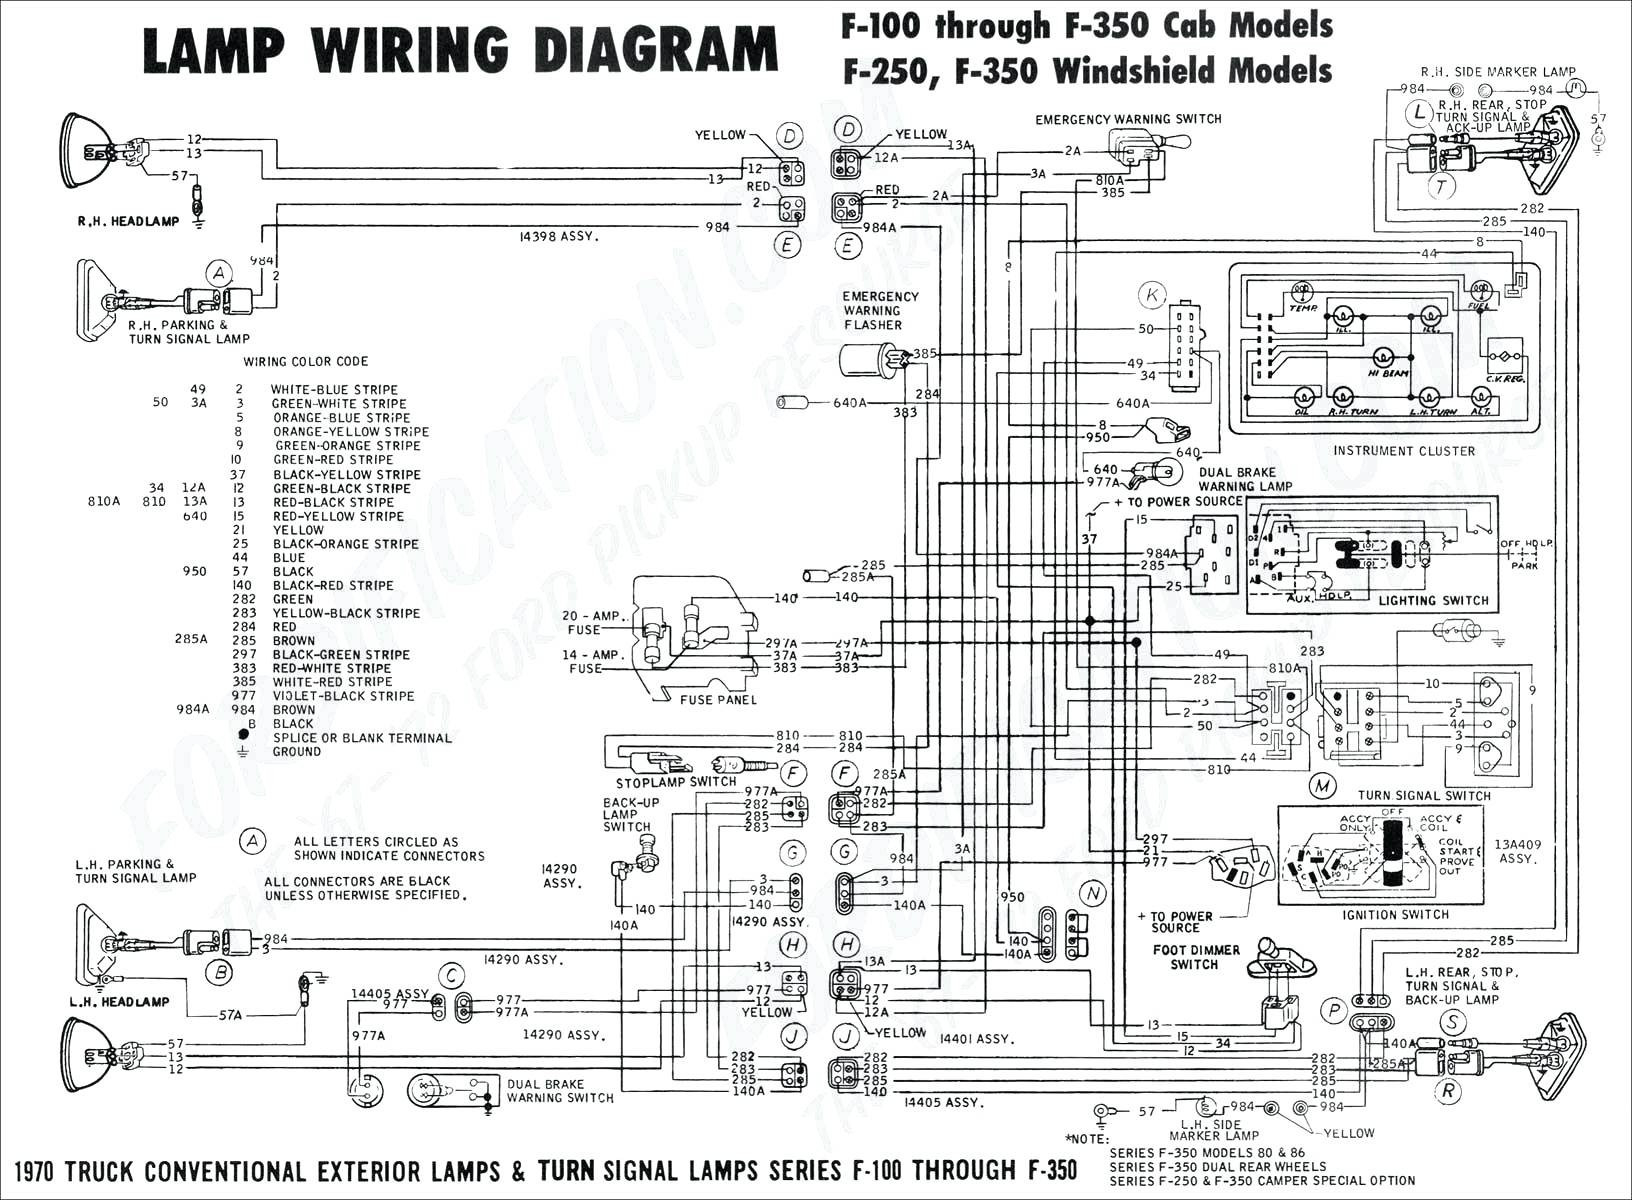 ford trailer wiring diagram Download-Ford Wiring Diagram Legend Fresh F150 Trailer Wiring Diagram Download 20-m